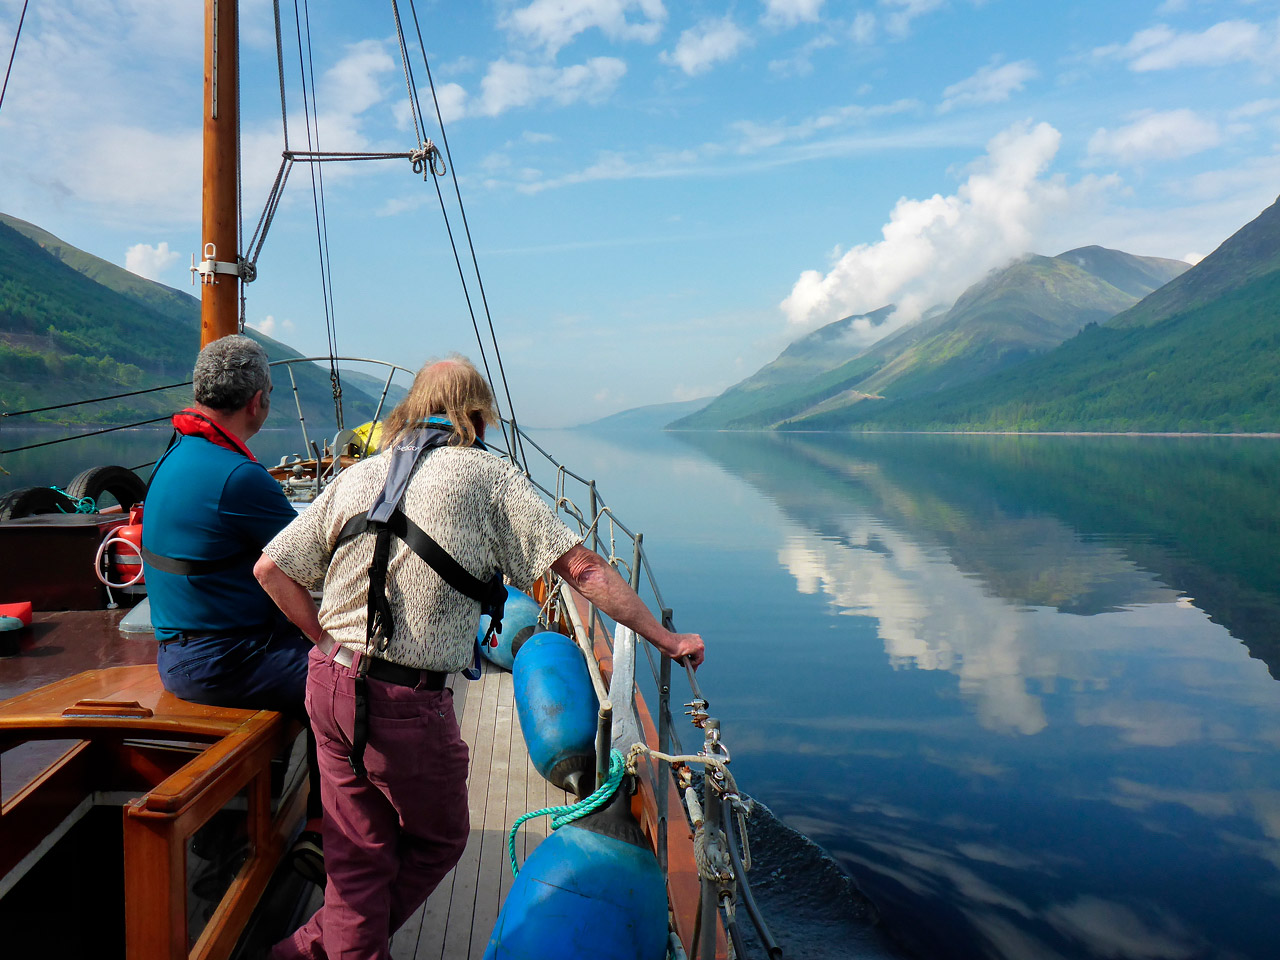 Short trips - Full or half day trips from Loch Crinan, visiting and passing the beautiful local islands with lunch ashore on the beach or aboard. The boat can start from inside the Crinan Canal which is fascinating.